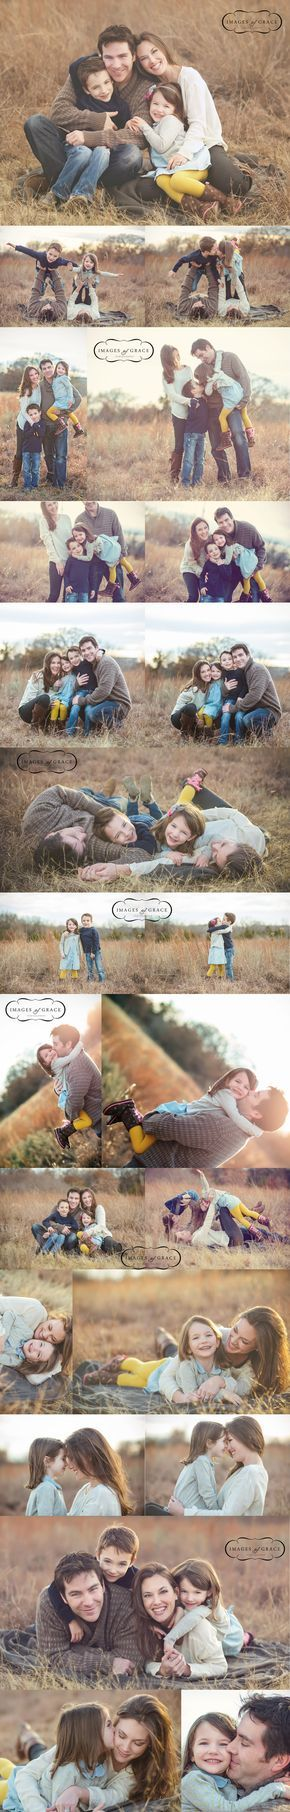 Fam pics I like the one with the patents on their backs with the kids on top, kids looking at the camera.   I also like the superman pose idea for Ken with Cole.